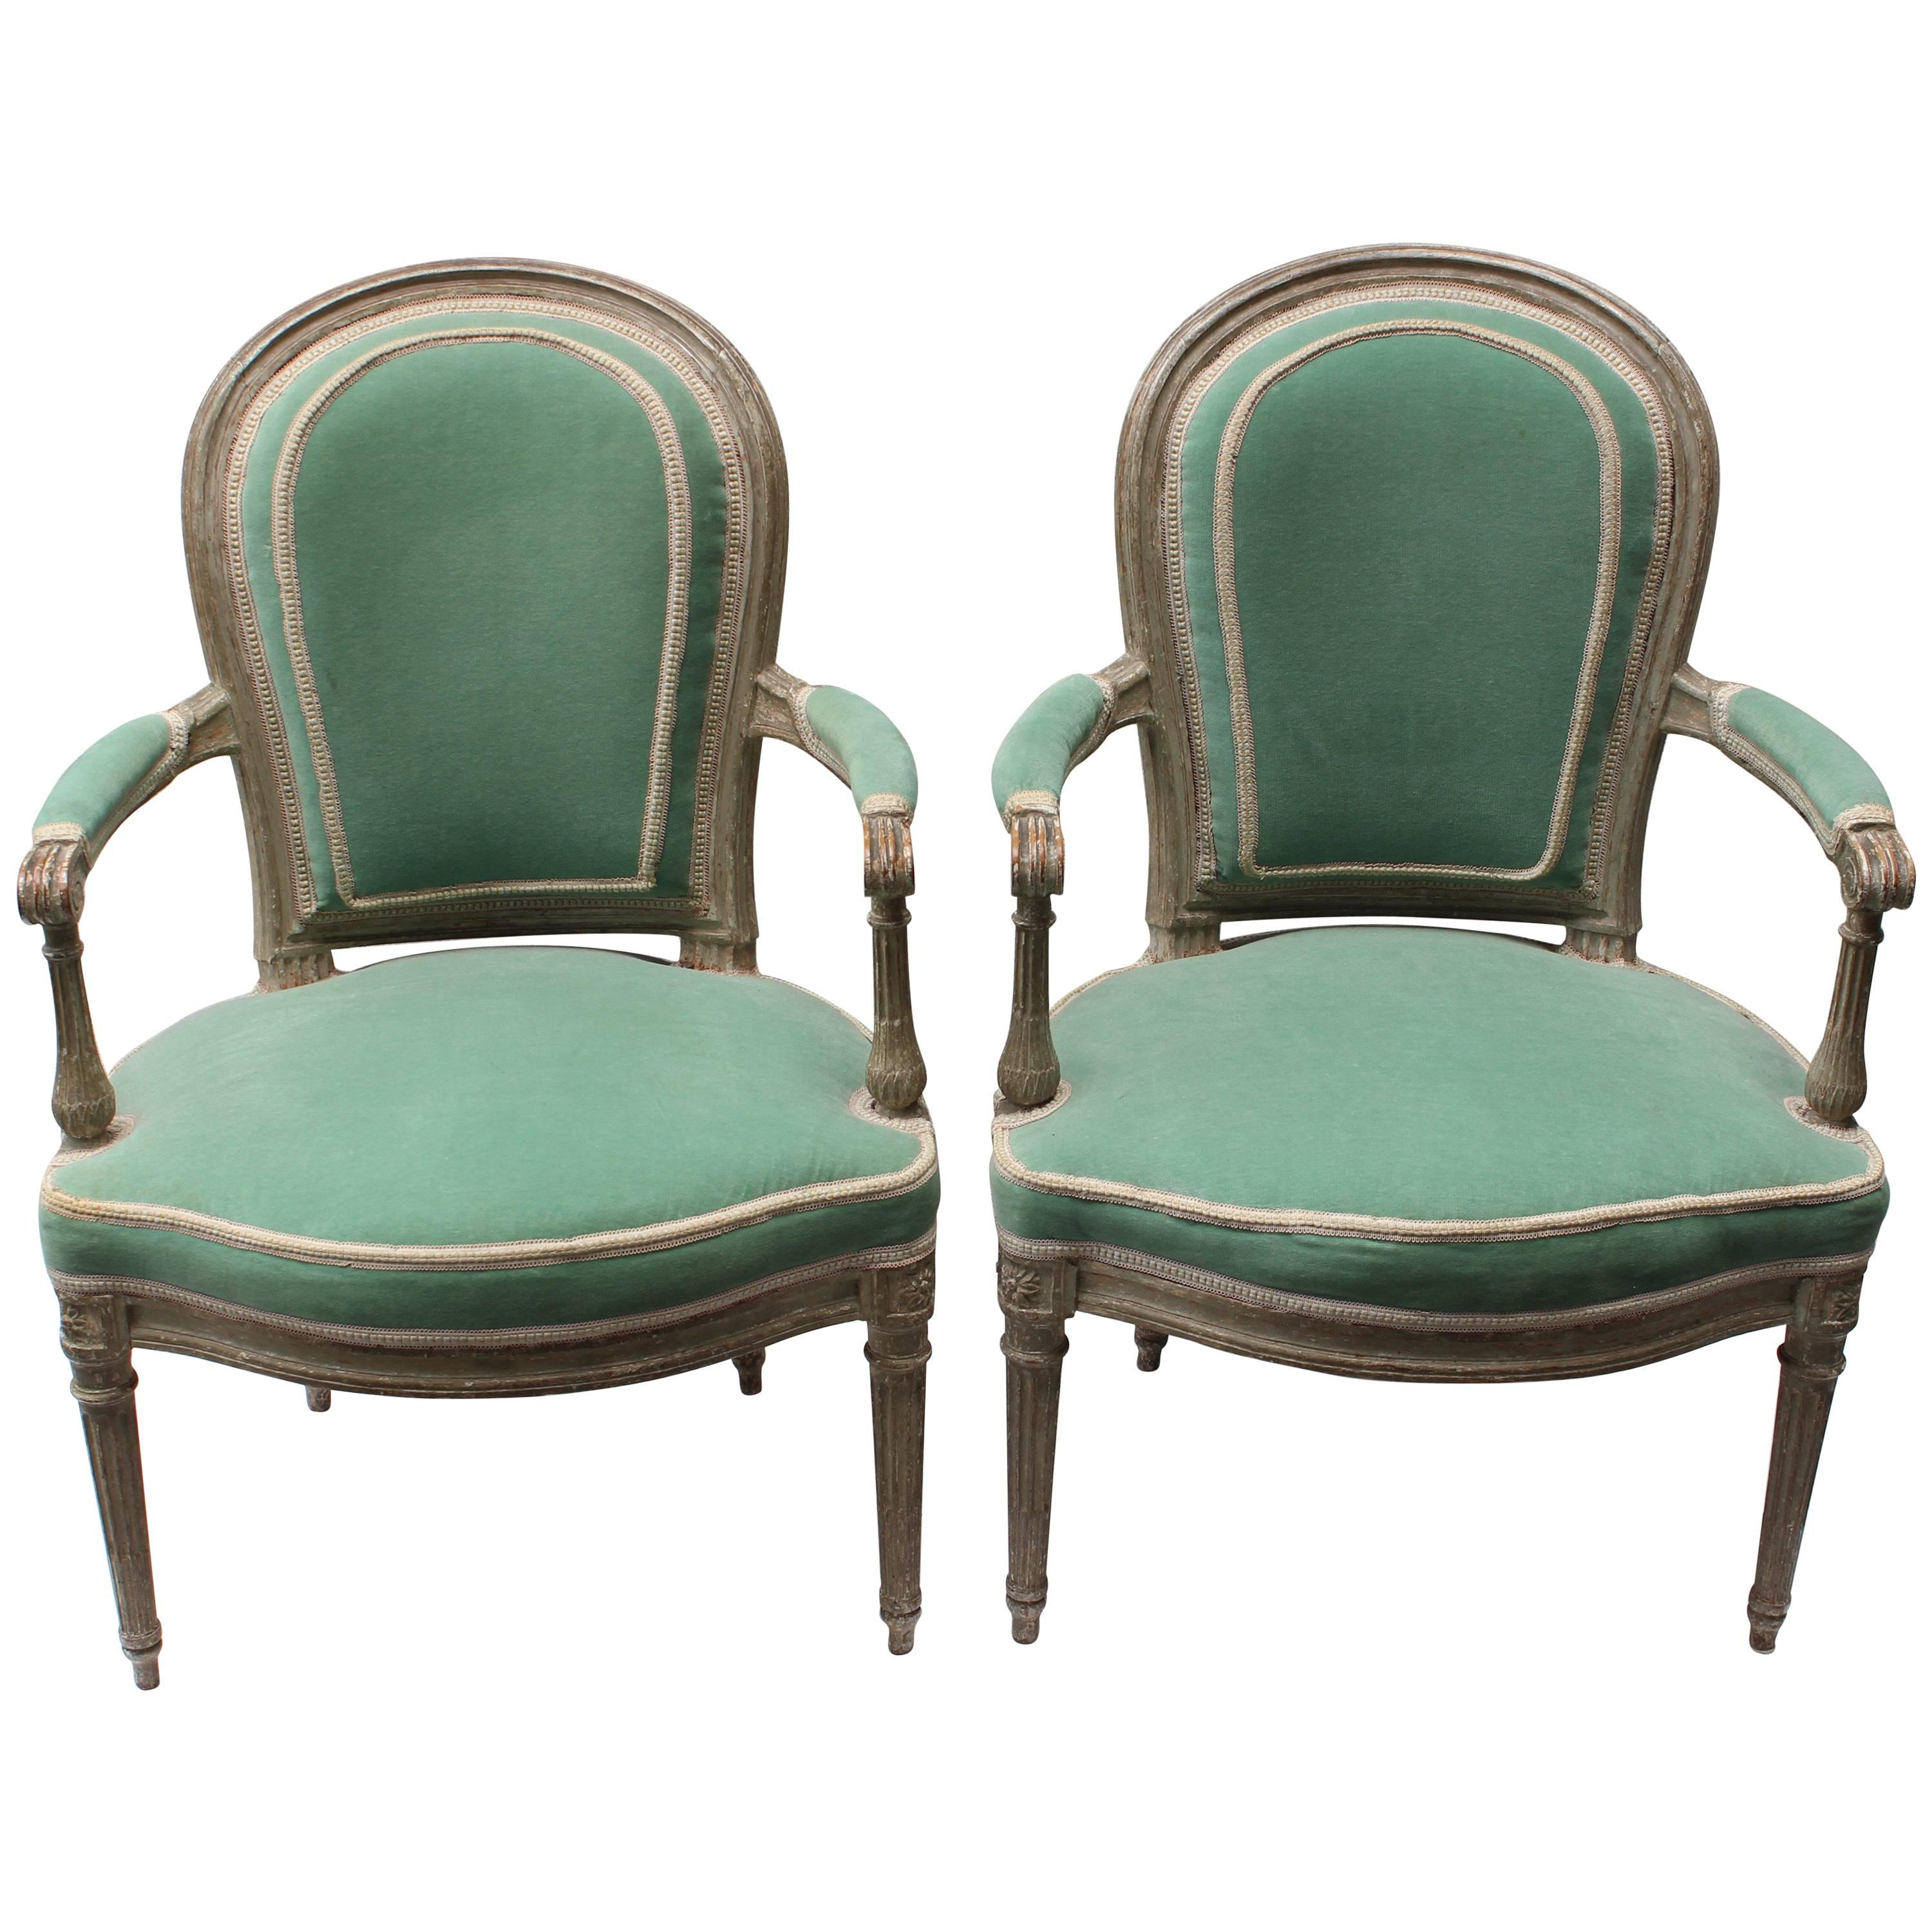 Pair of 18th Century Louis XVI Fauteuils Attributed to Georges Jacob